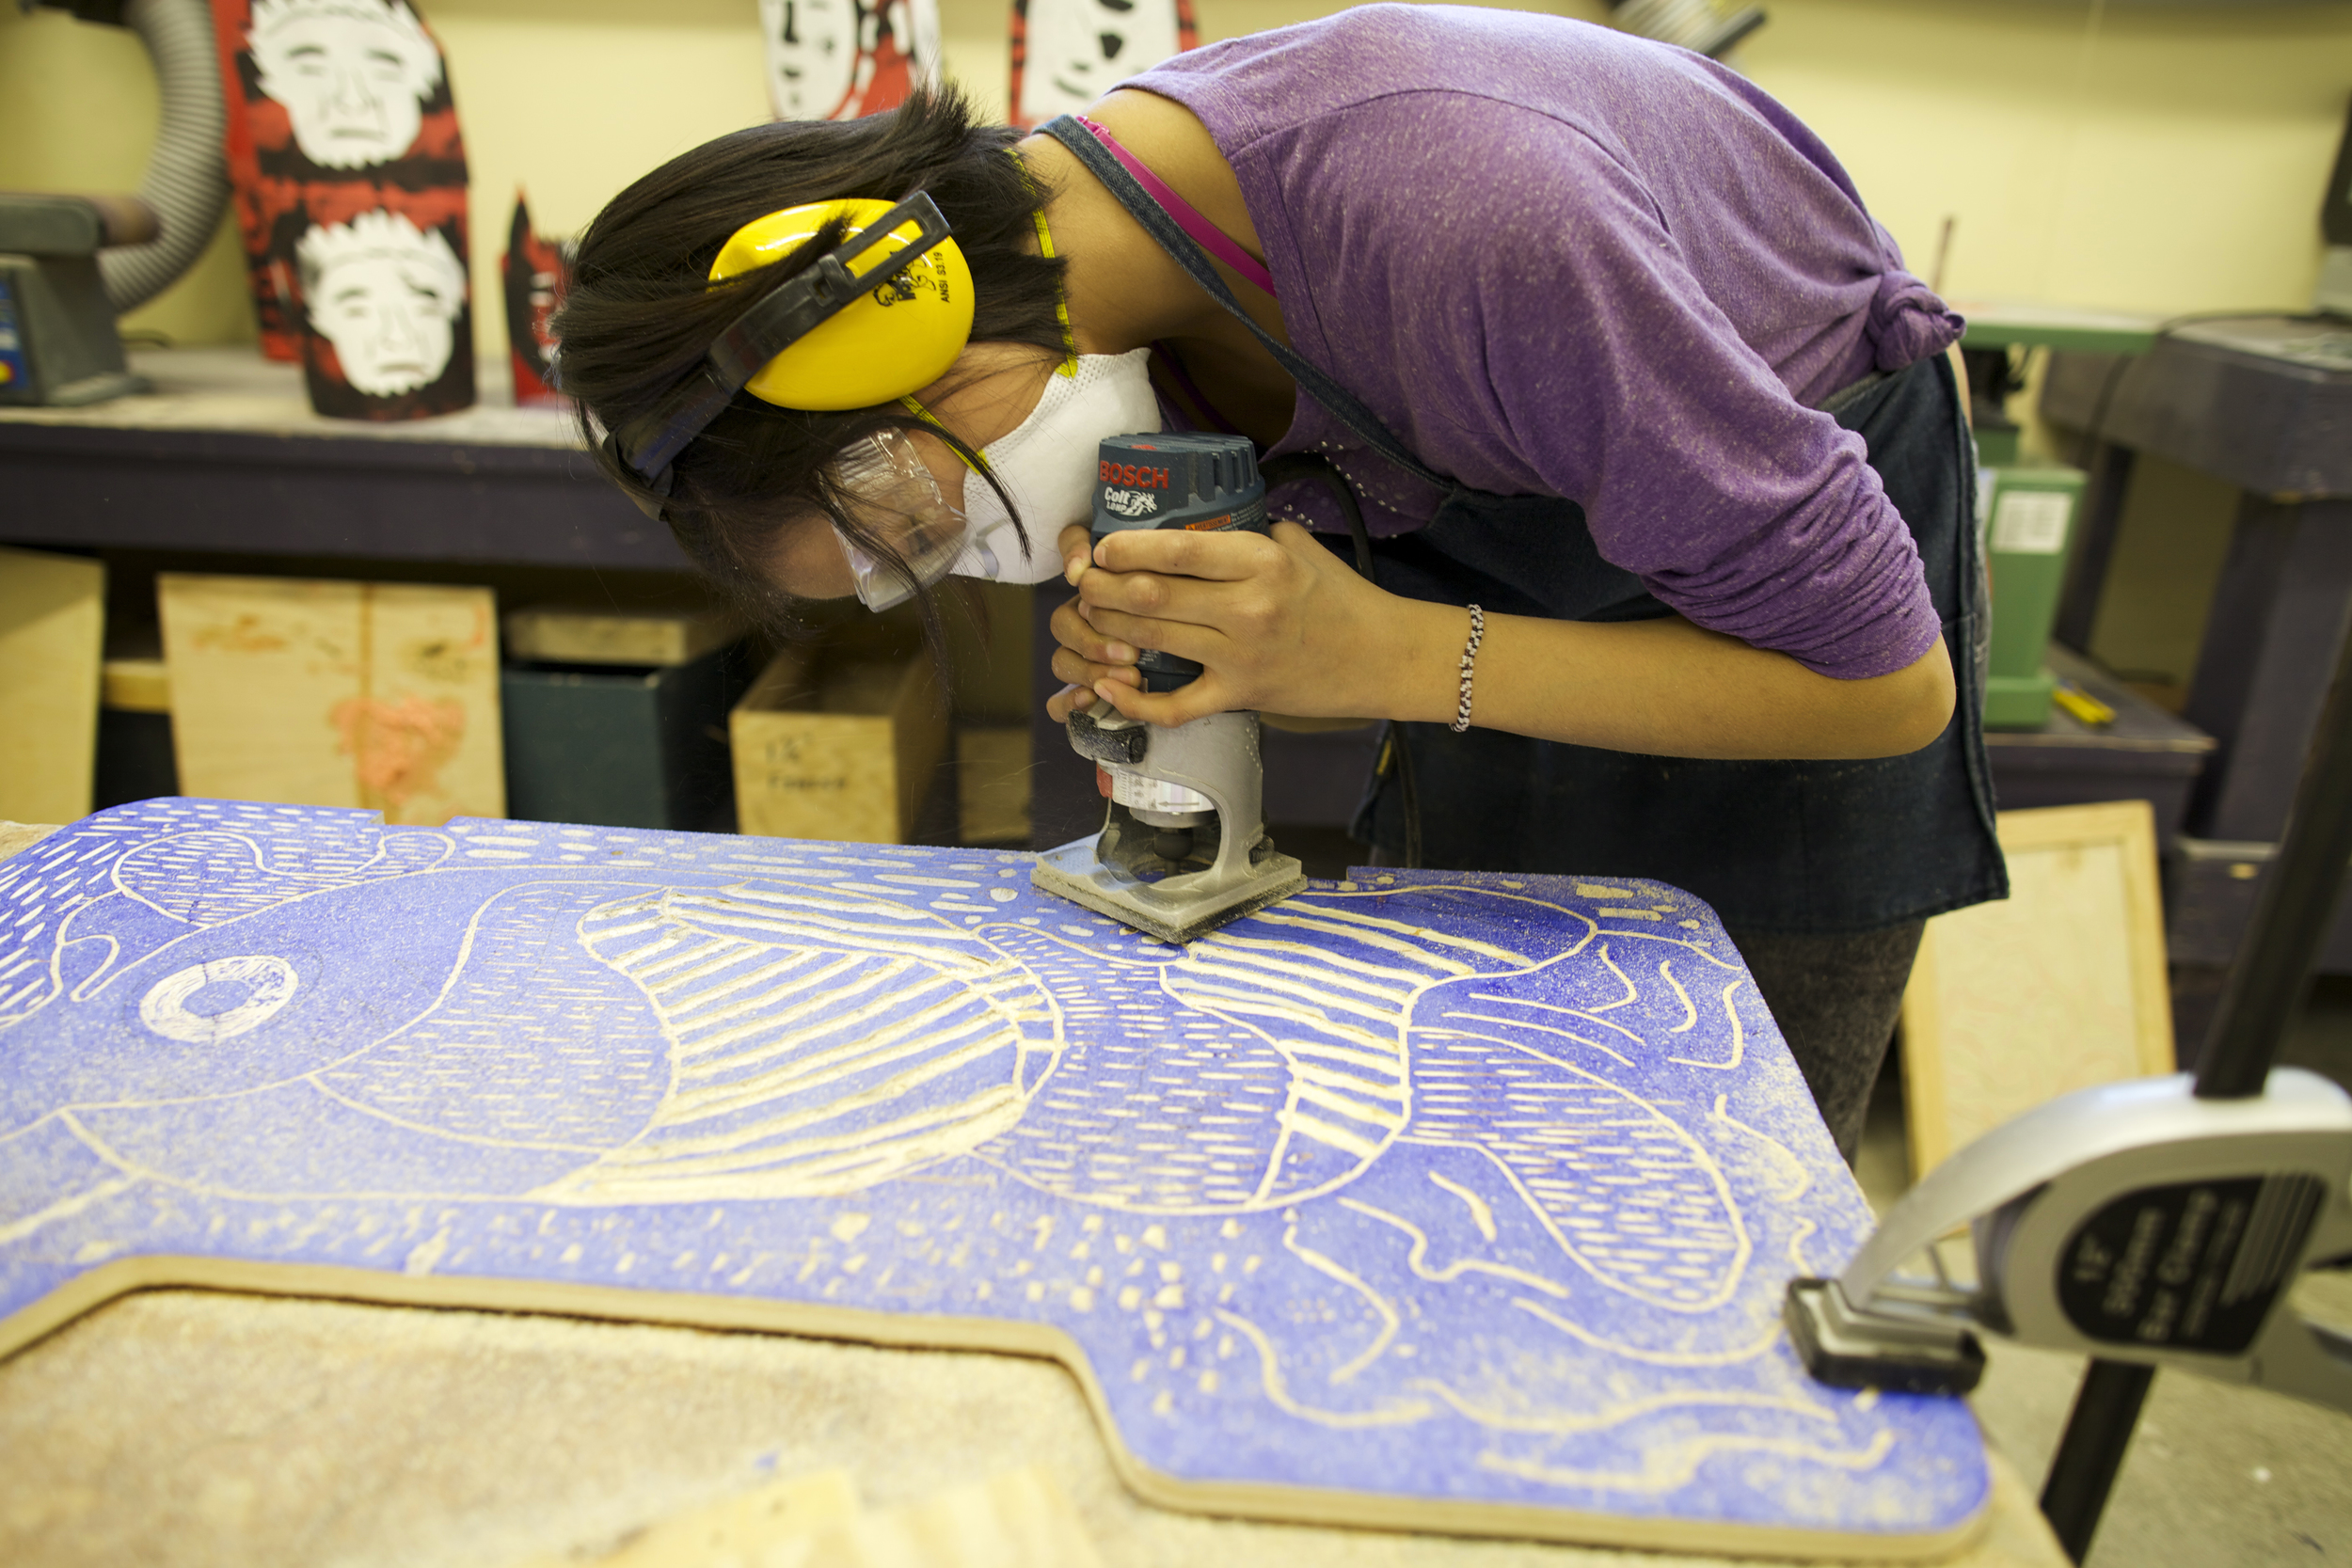 Reductive printmaking: After printing her block as a first layer, Susie carves into the sameblock again with a router to create a second layer